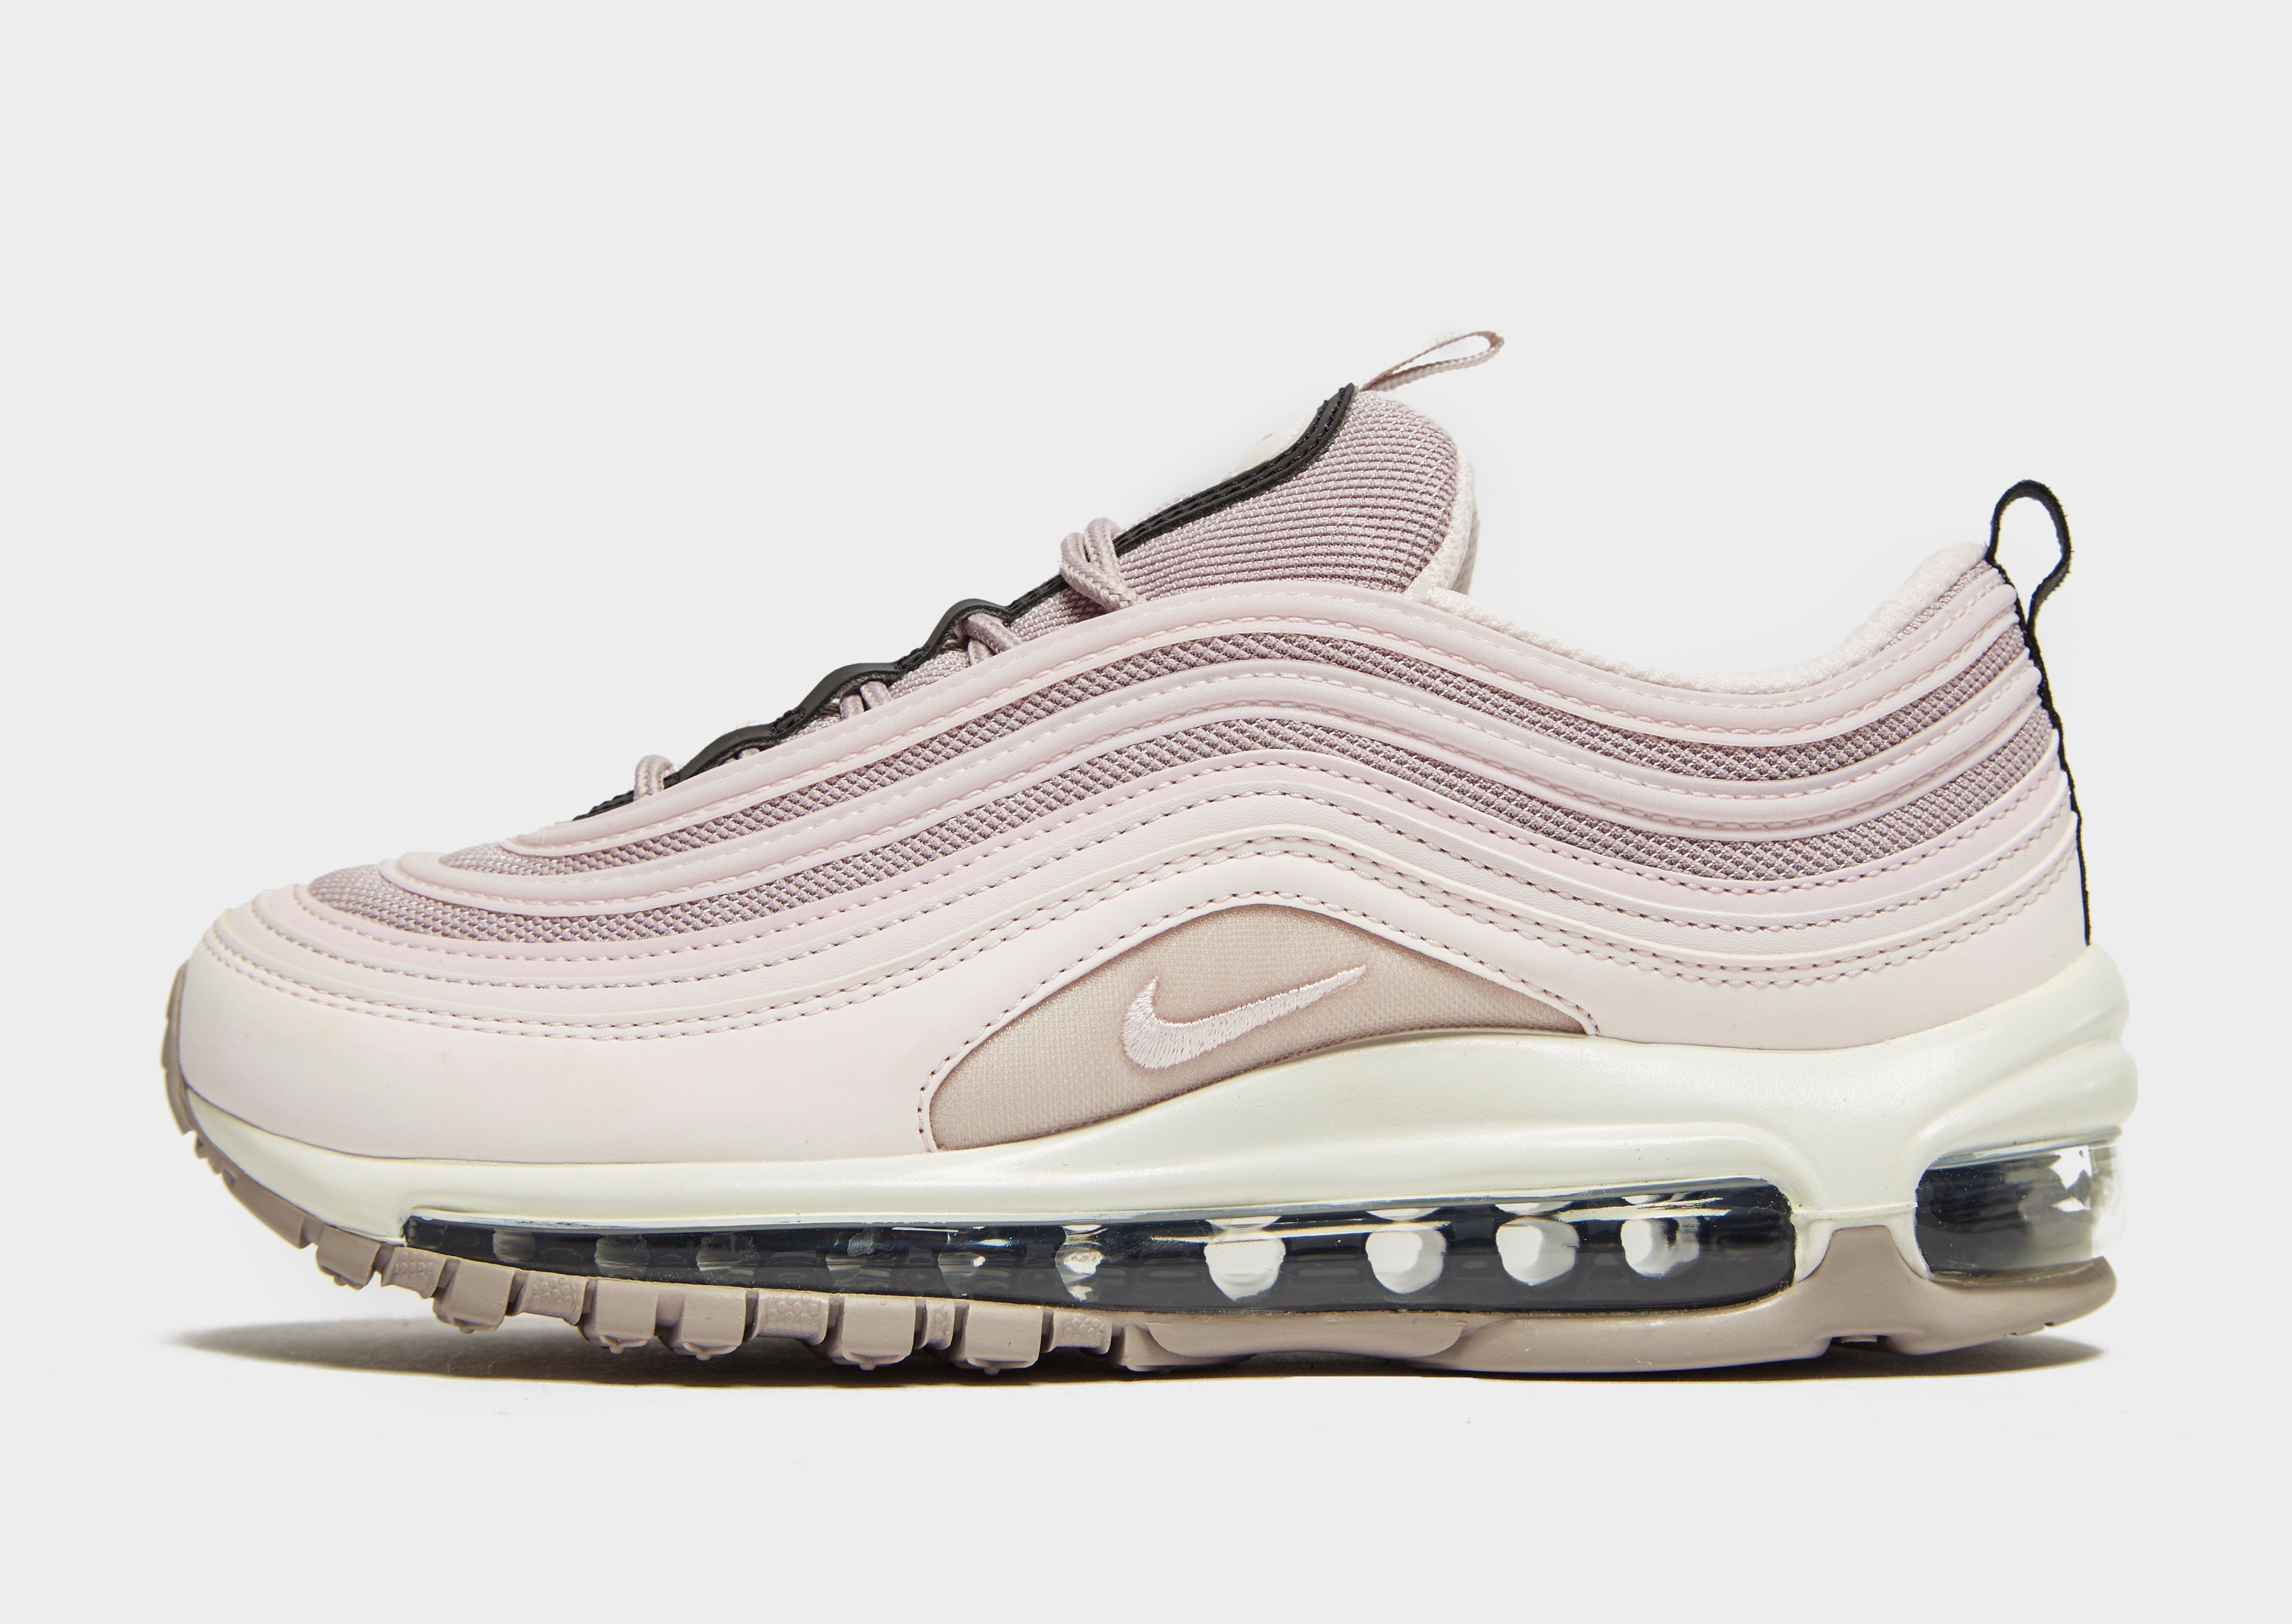 on sale 32ce4 1ffd6 Nike Air Max 97 Women's Shoe | JD Sports